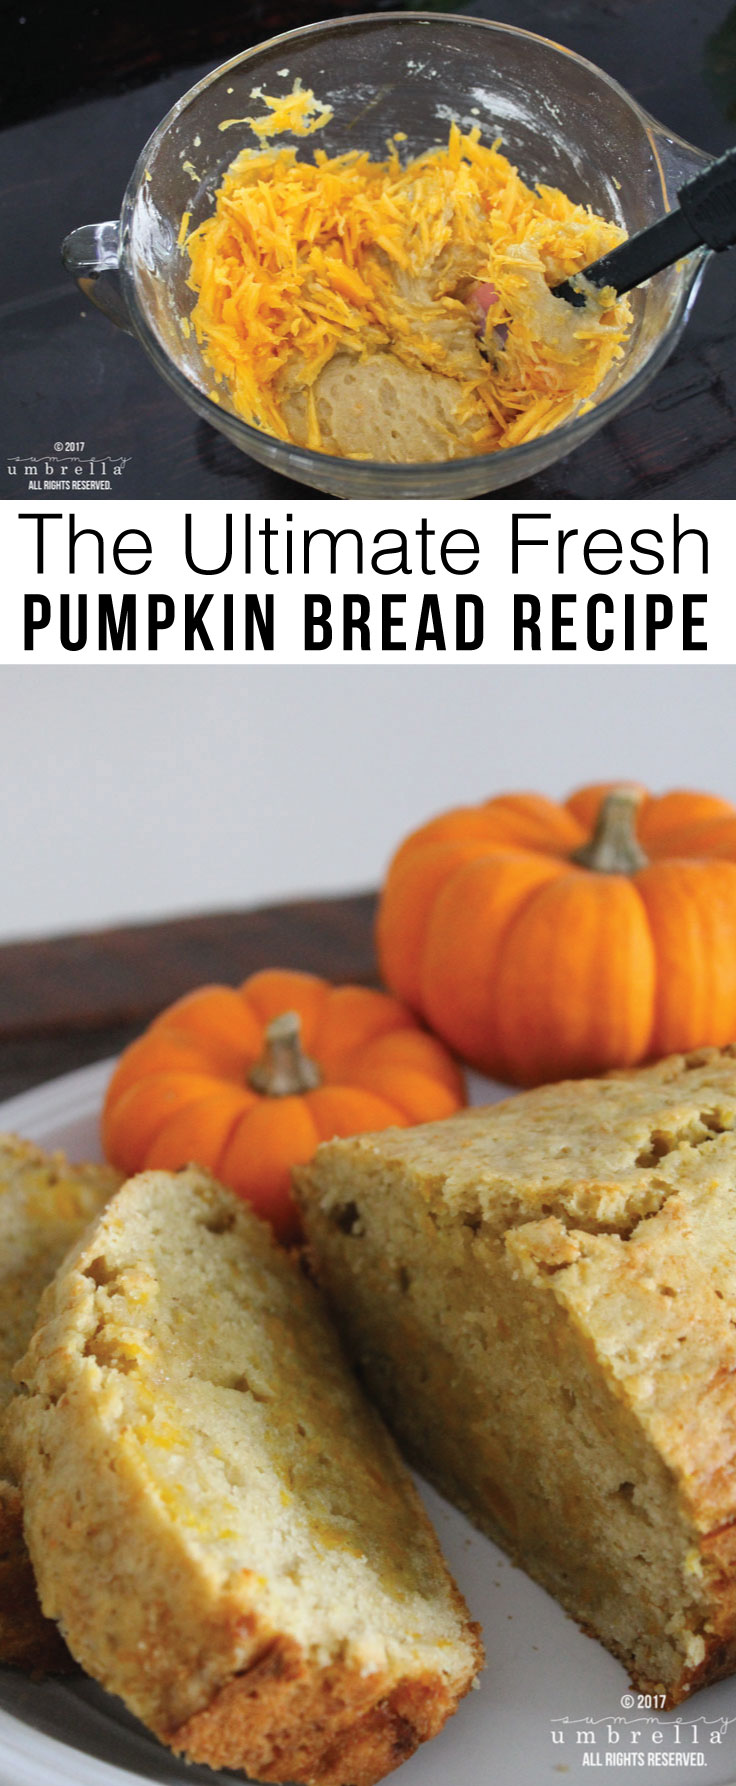 You'll never look at pumpkins the same again after you've tried this recipe for homemade and fresh pumpkin bread. It is truly delicious and addicting!